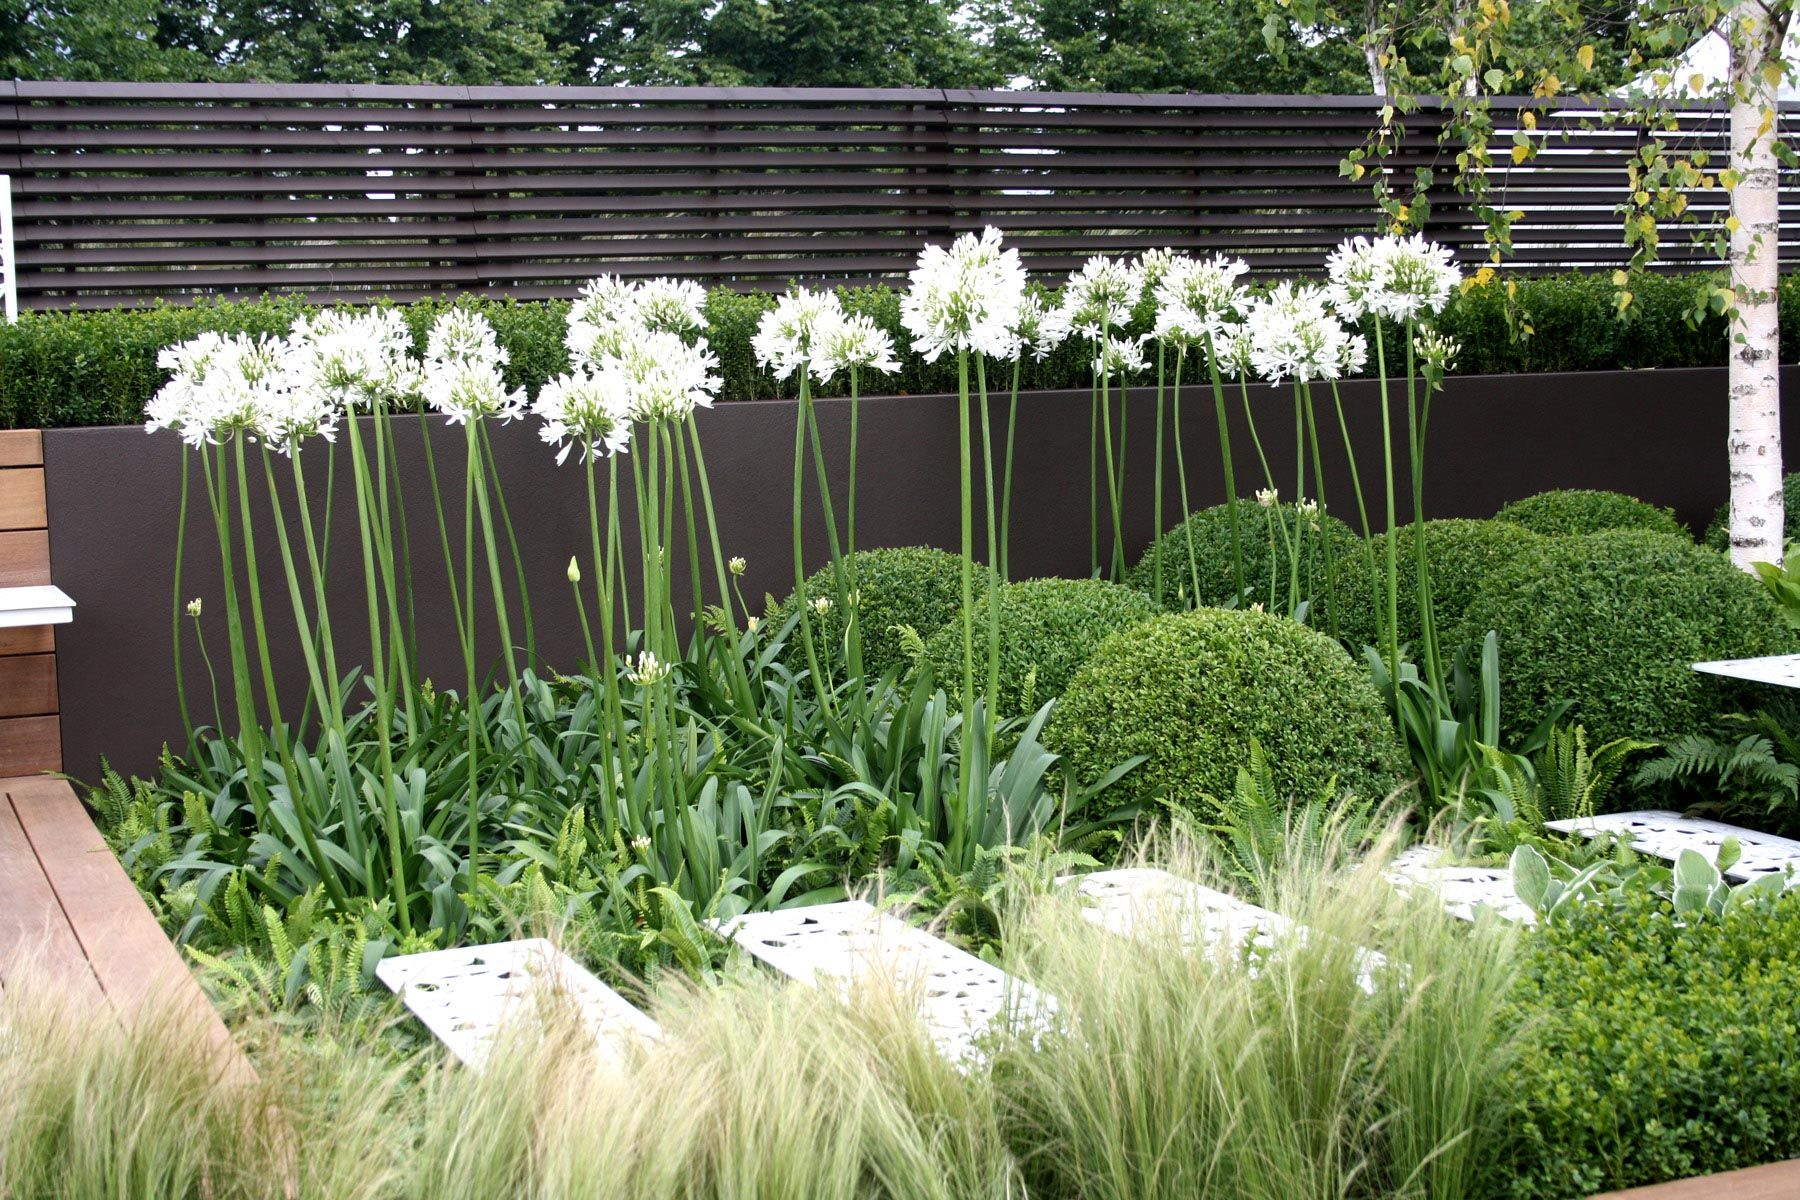 Buxus agapanthus silver birch gardens pinterest - Garden design using grasses ...